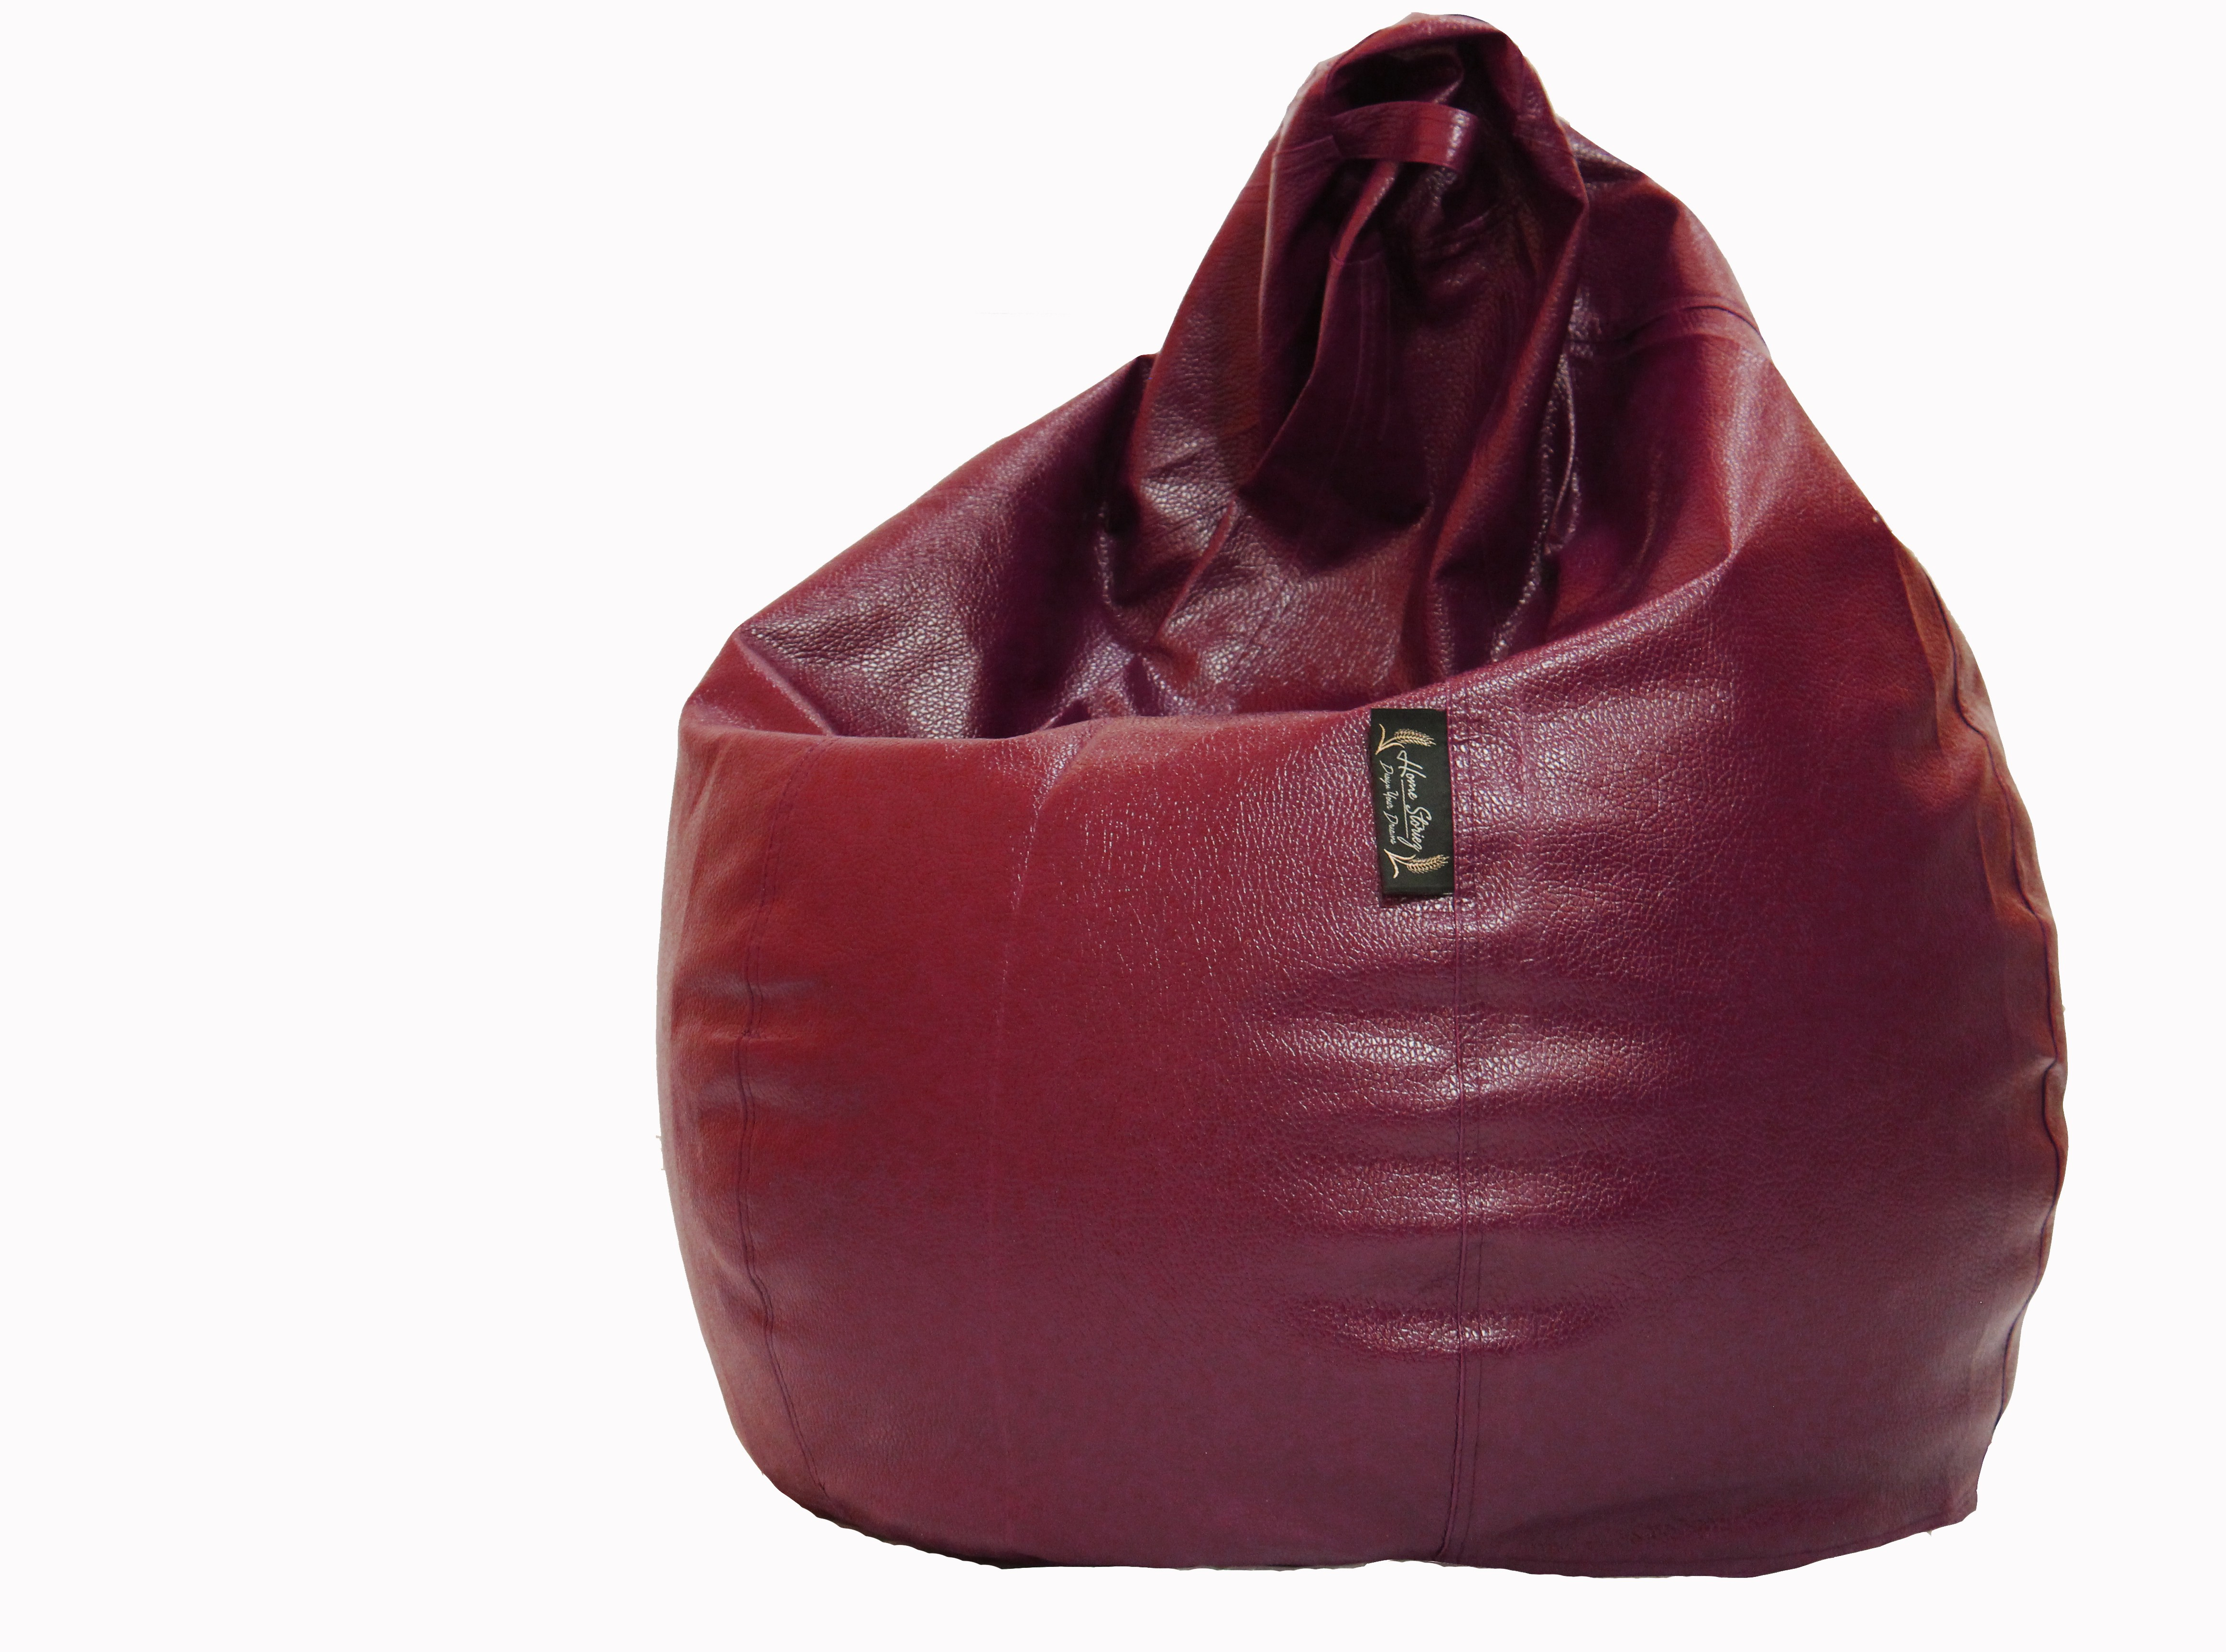 View Home Storiez XL Bean Bag Cover(Maroon) Furniture (Home Storiez)